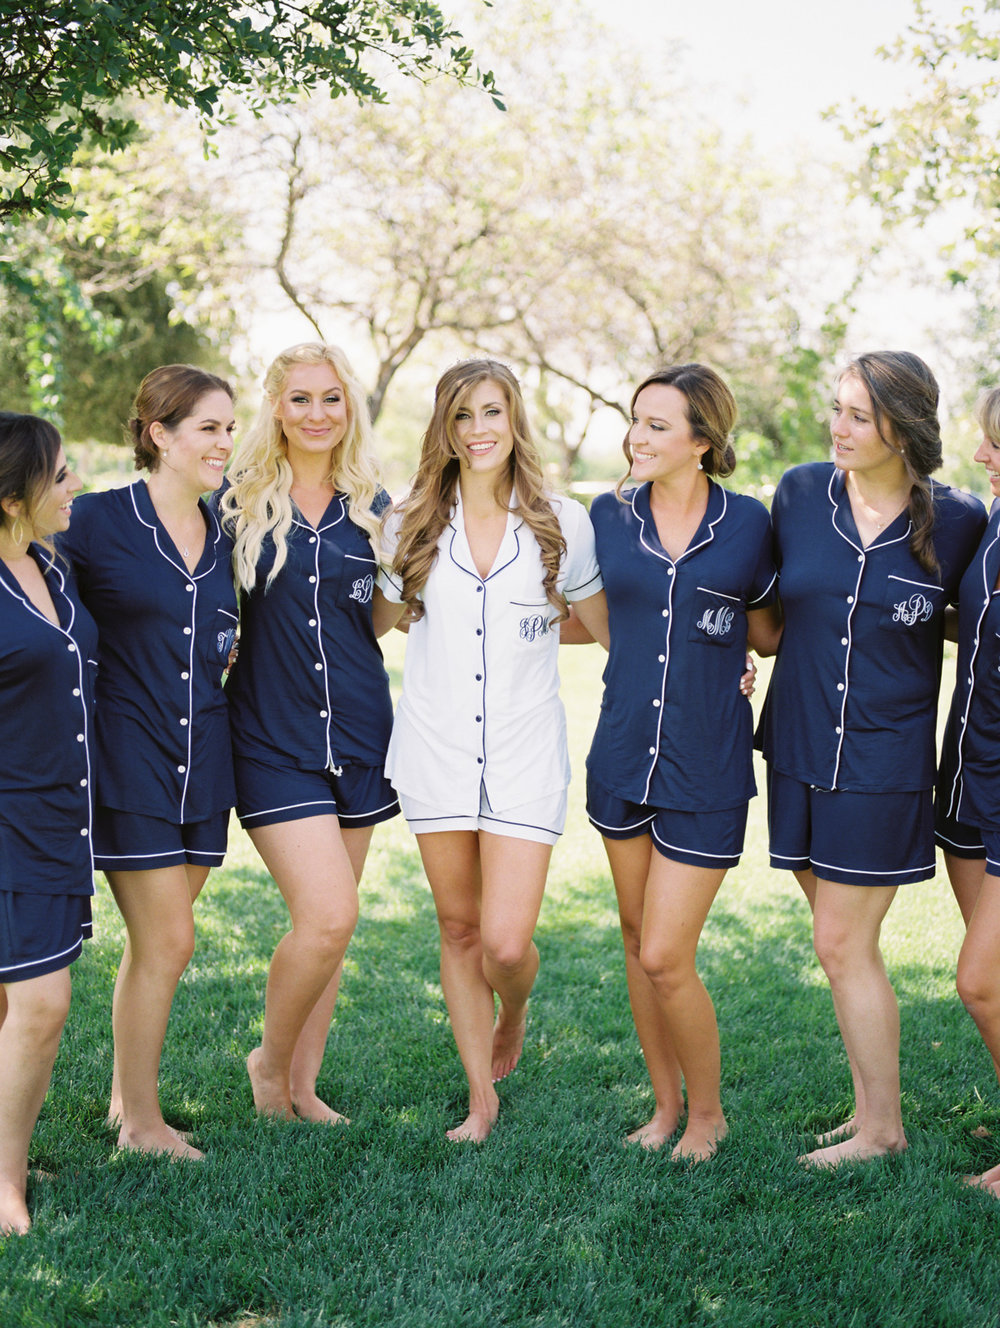 Bride & bridesmaids in matching Pj's! Such a cute bridesmaid gift!